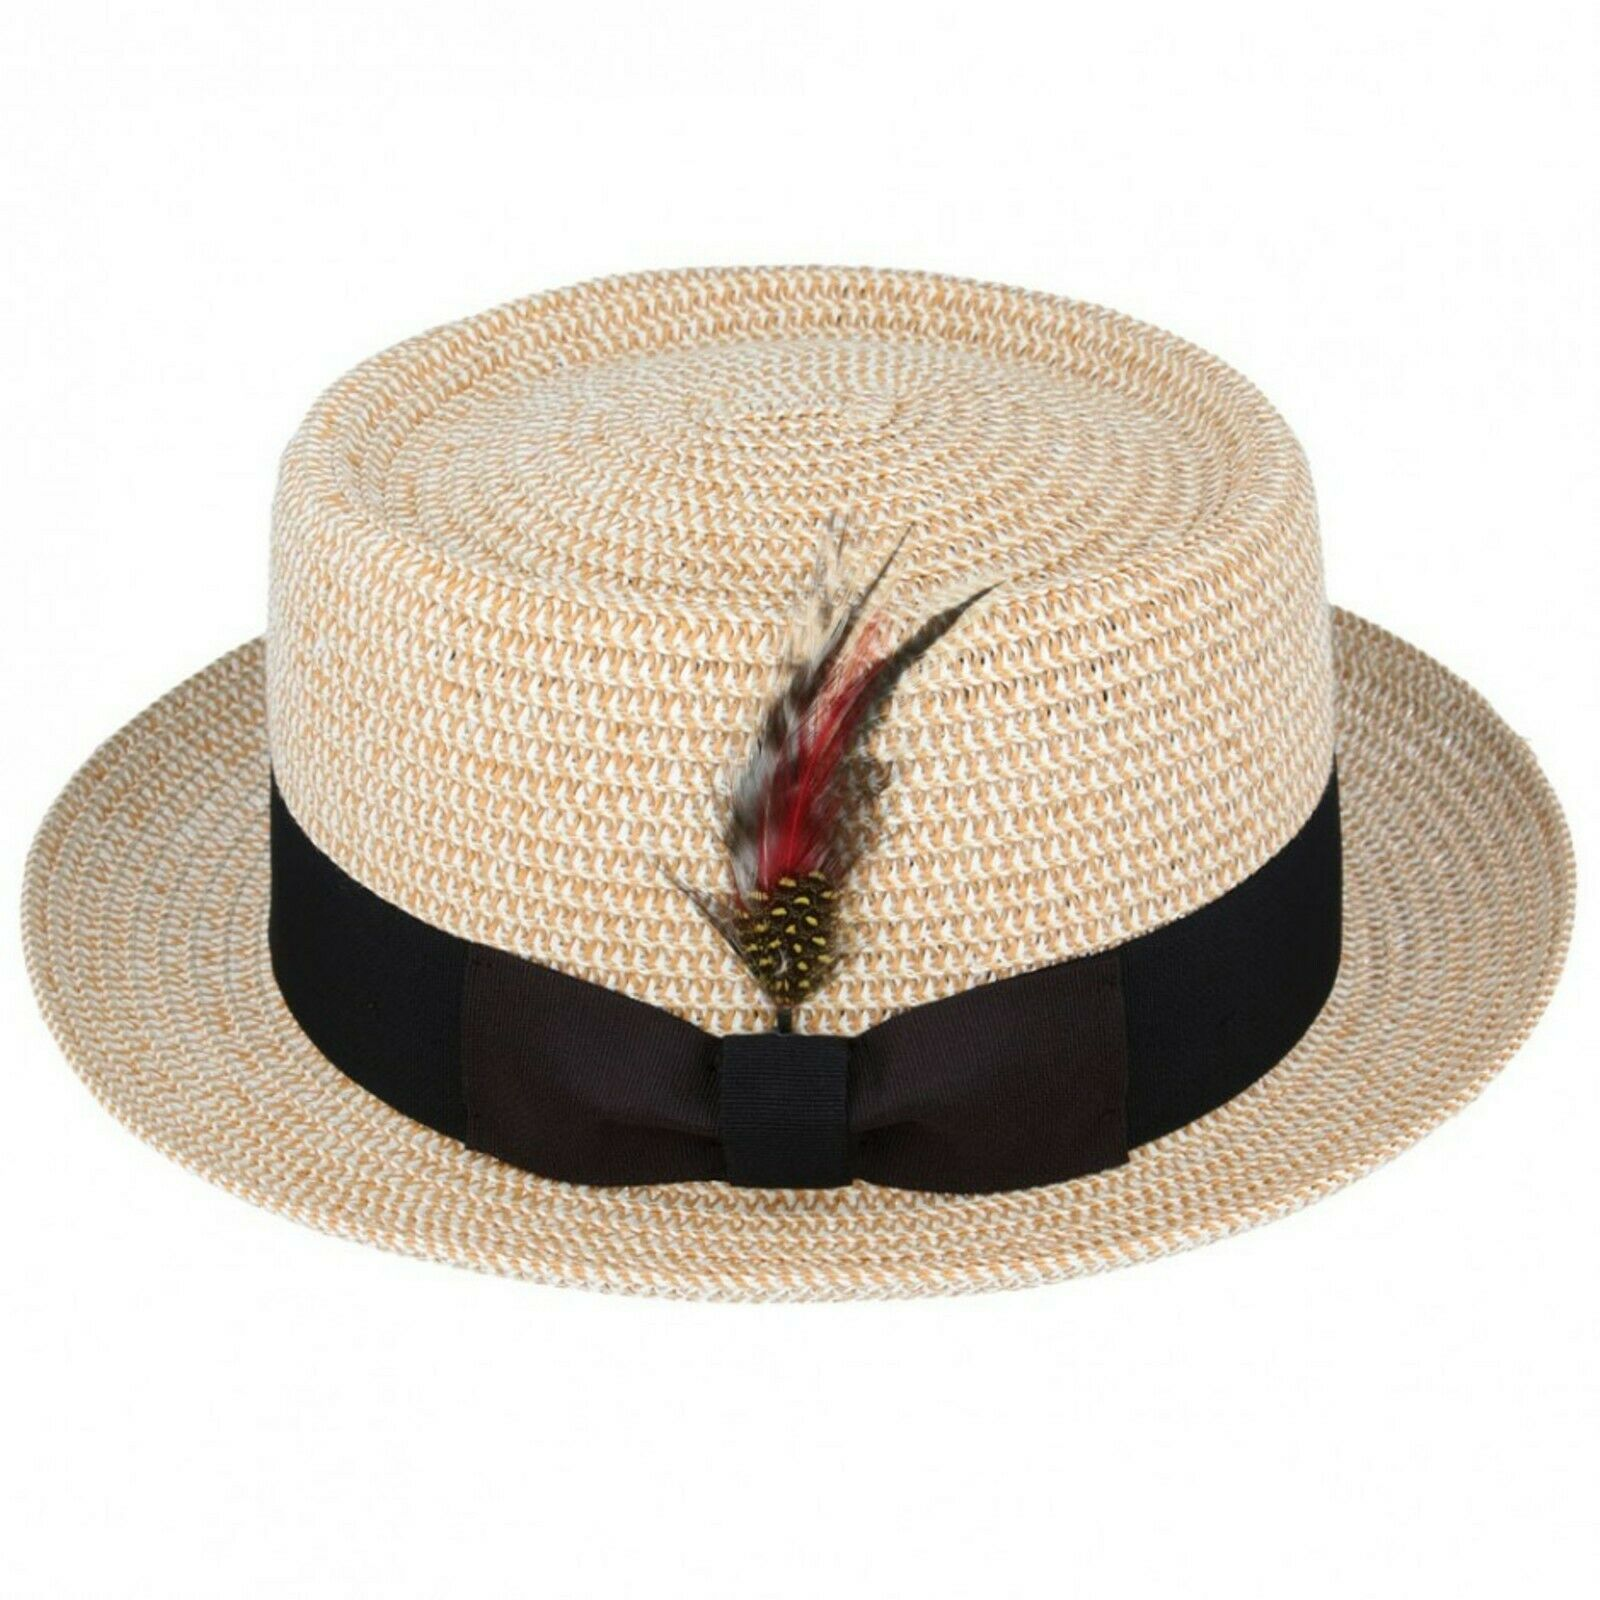 1223213164901 UNISEX Crushable Straw Summer Pork Pie Trilby Hat With Removable Feather  andAdjustable Sweatband